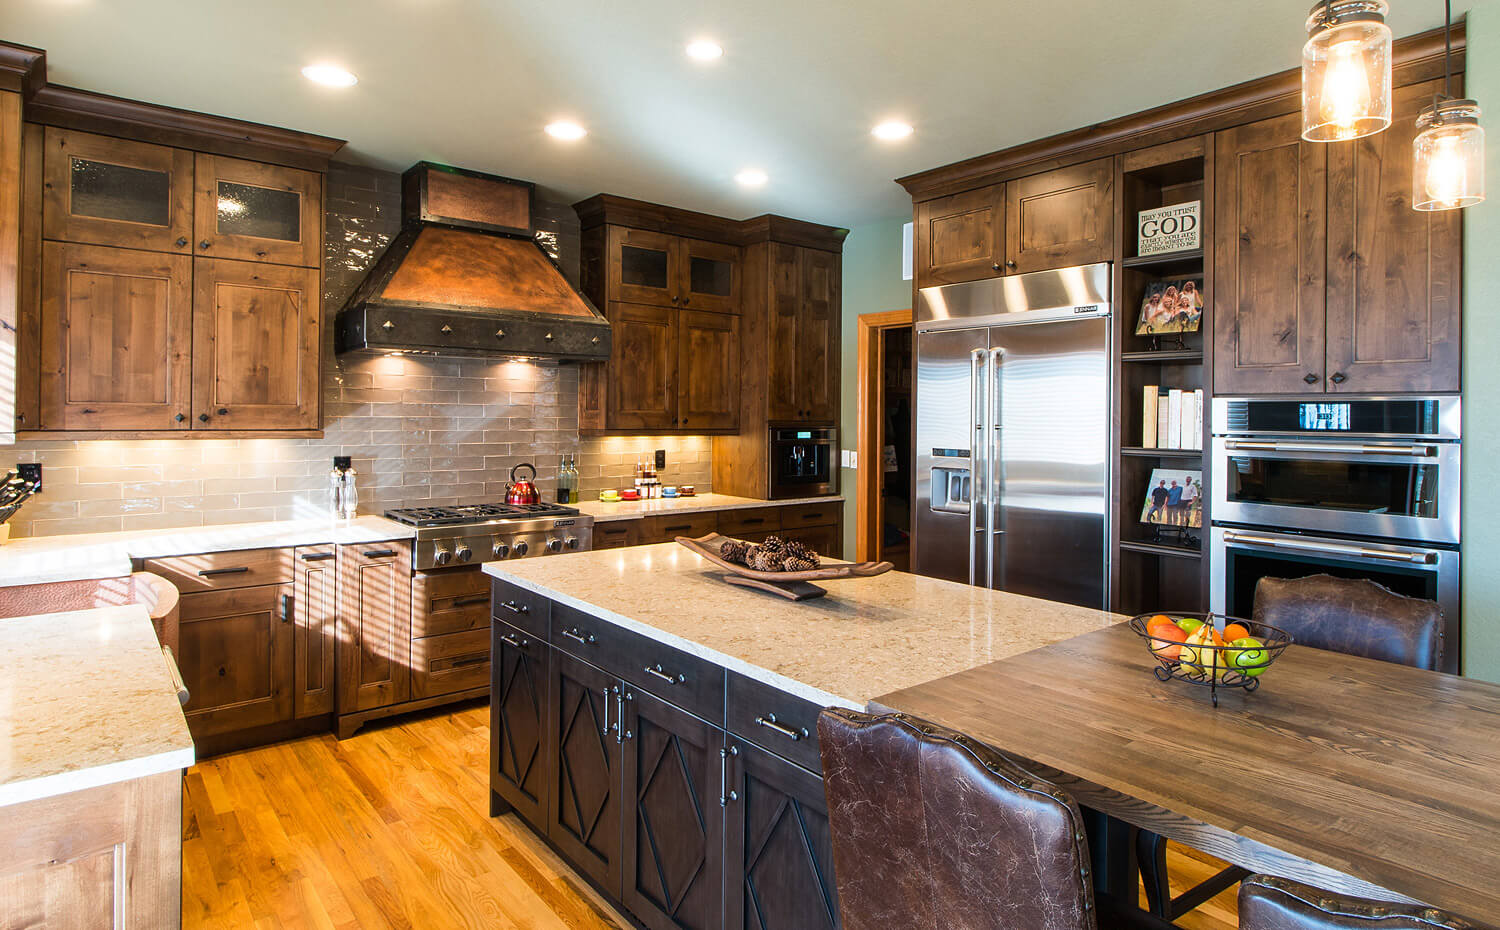 Kitchen Design Showroom Denver Co Kitchen Traditions Of Colorado Denver Design District